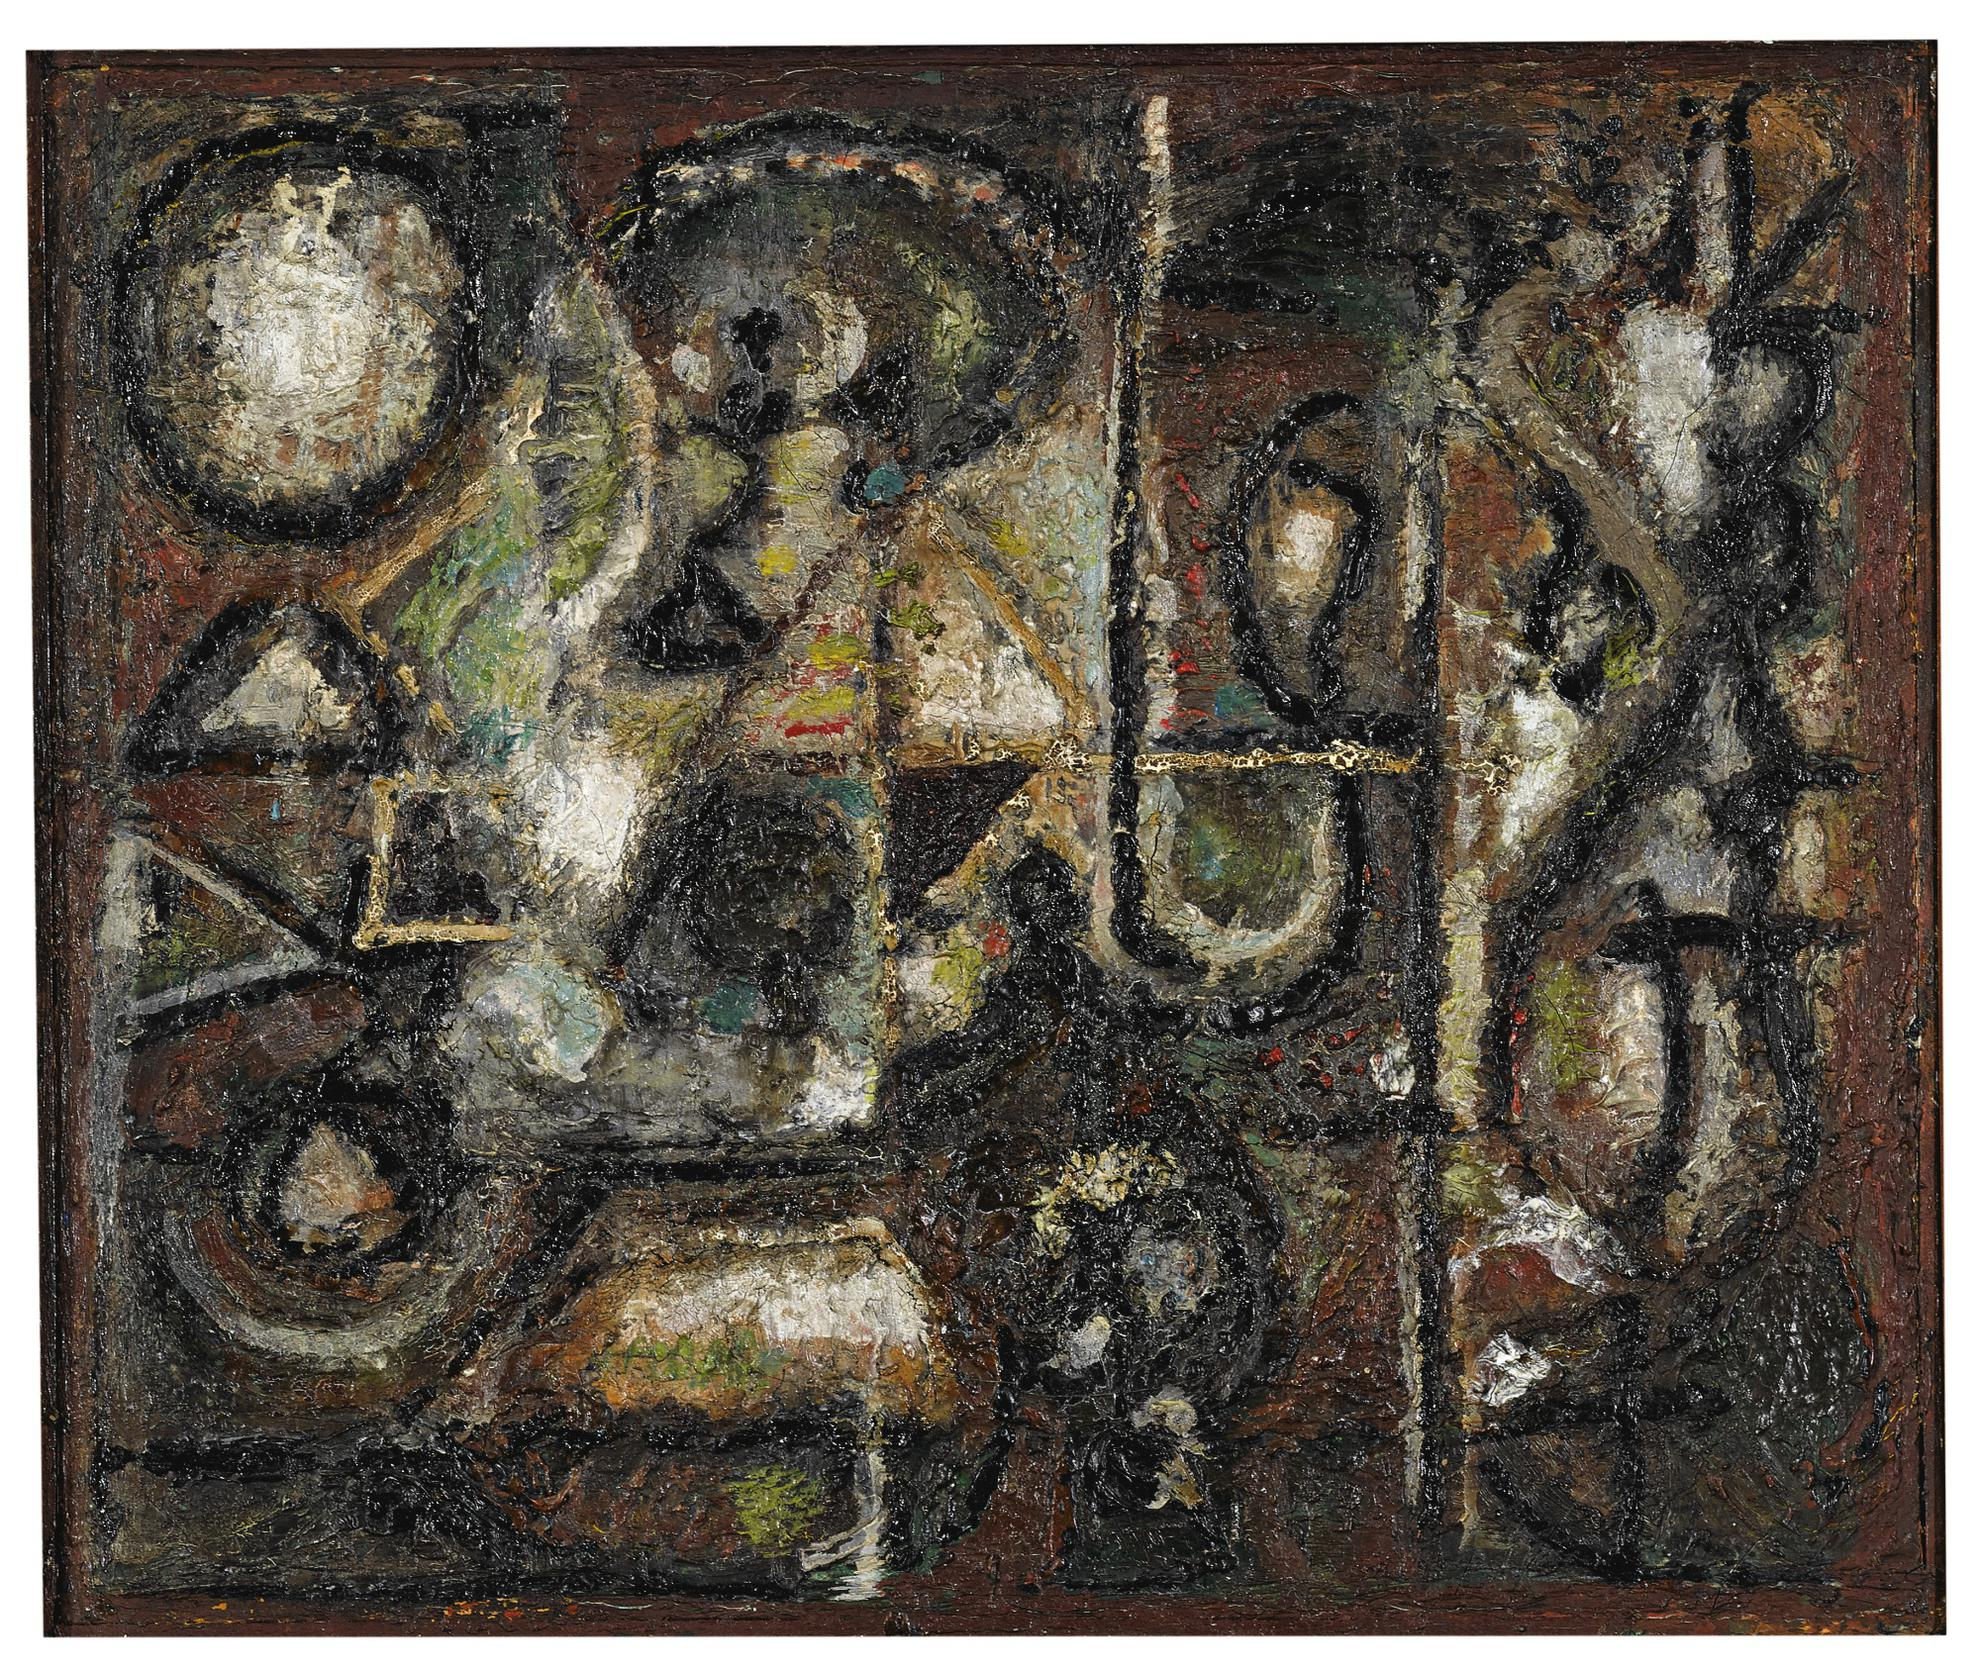 Richard Pousette-Dart-Oriental Lights-1945